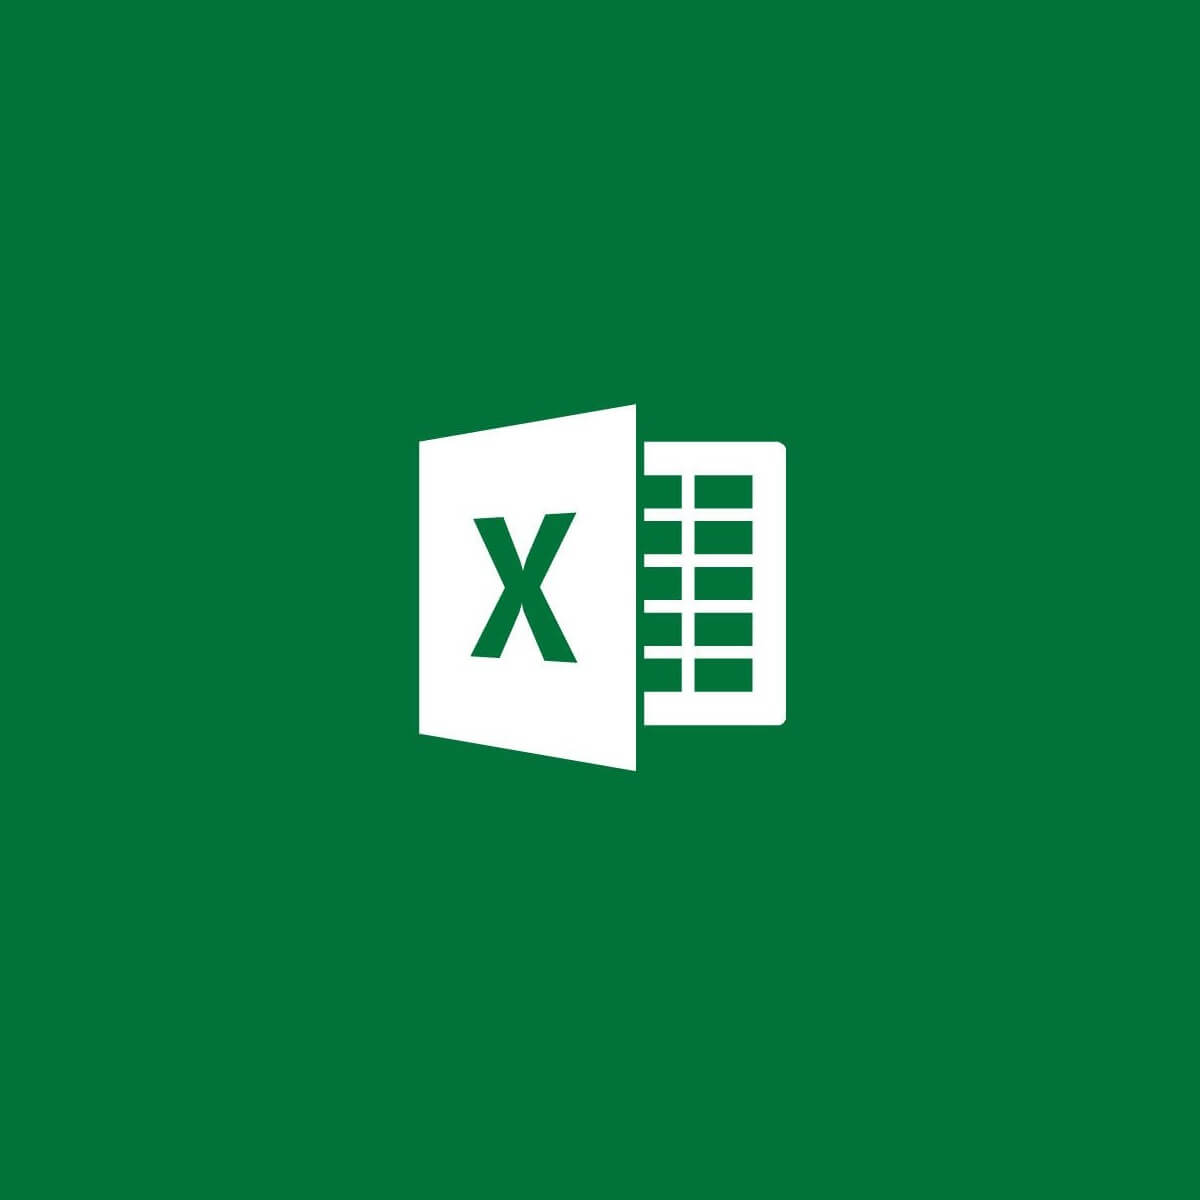 Microsoft Excel Cannot Add New Cells Check Out These Tips